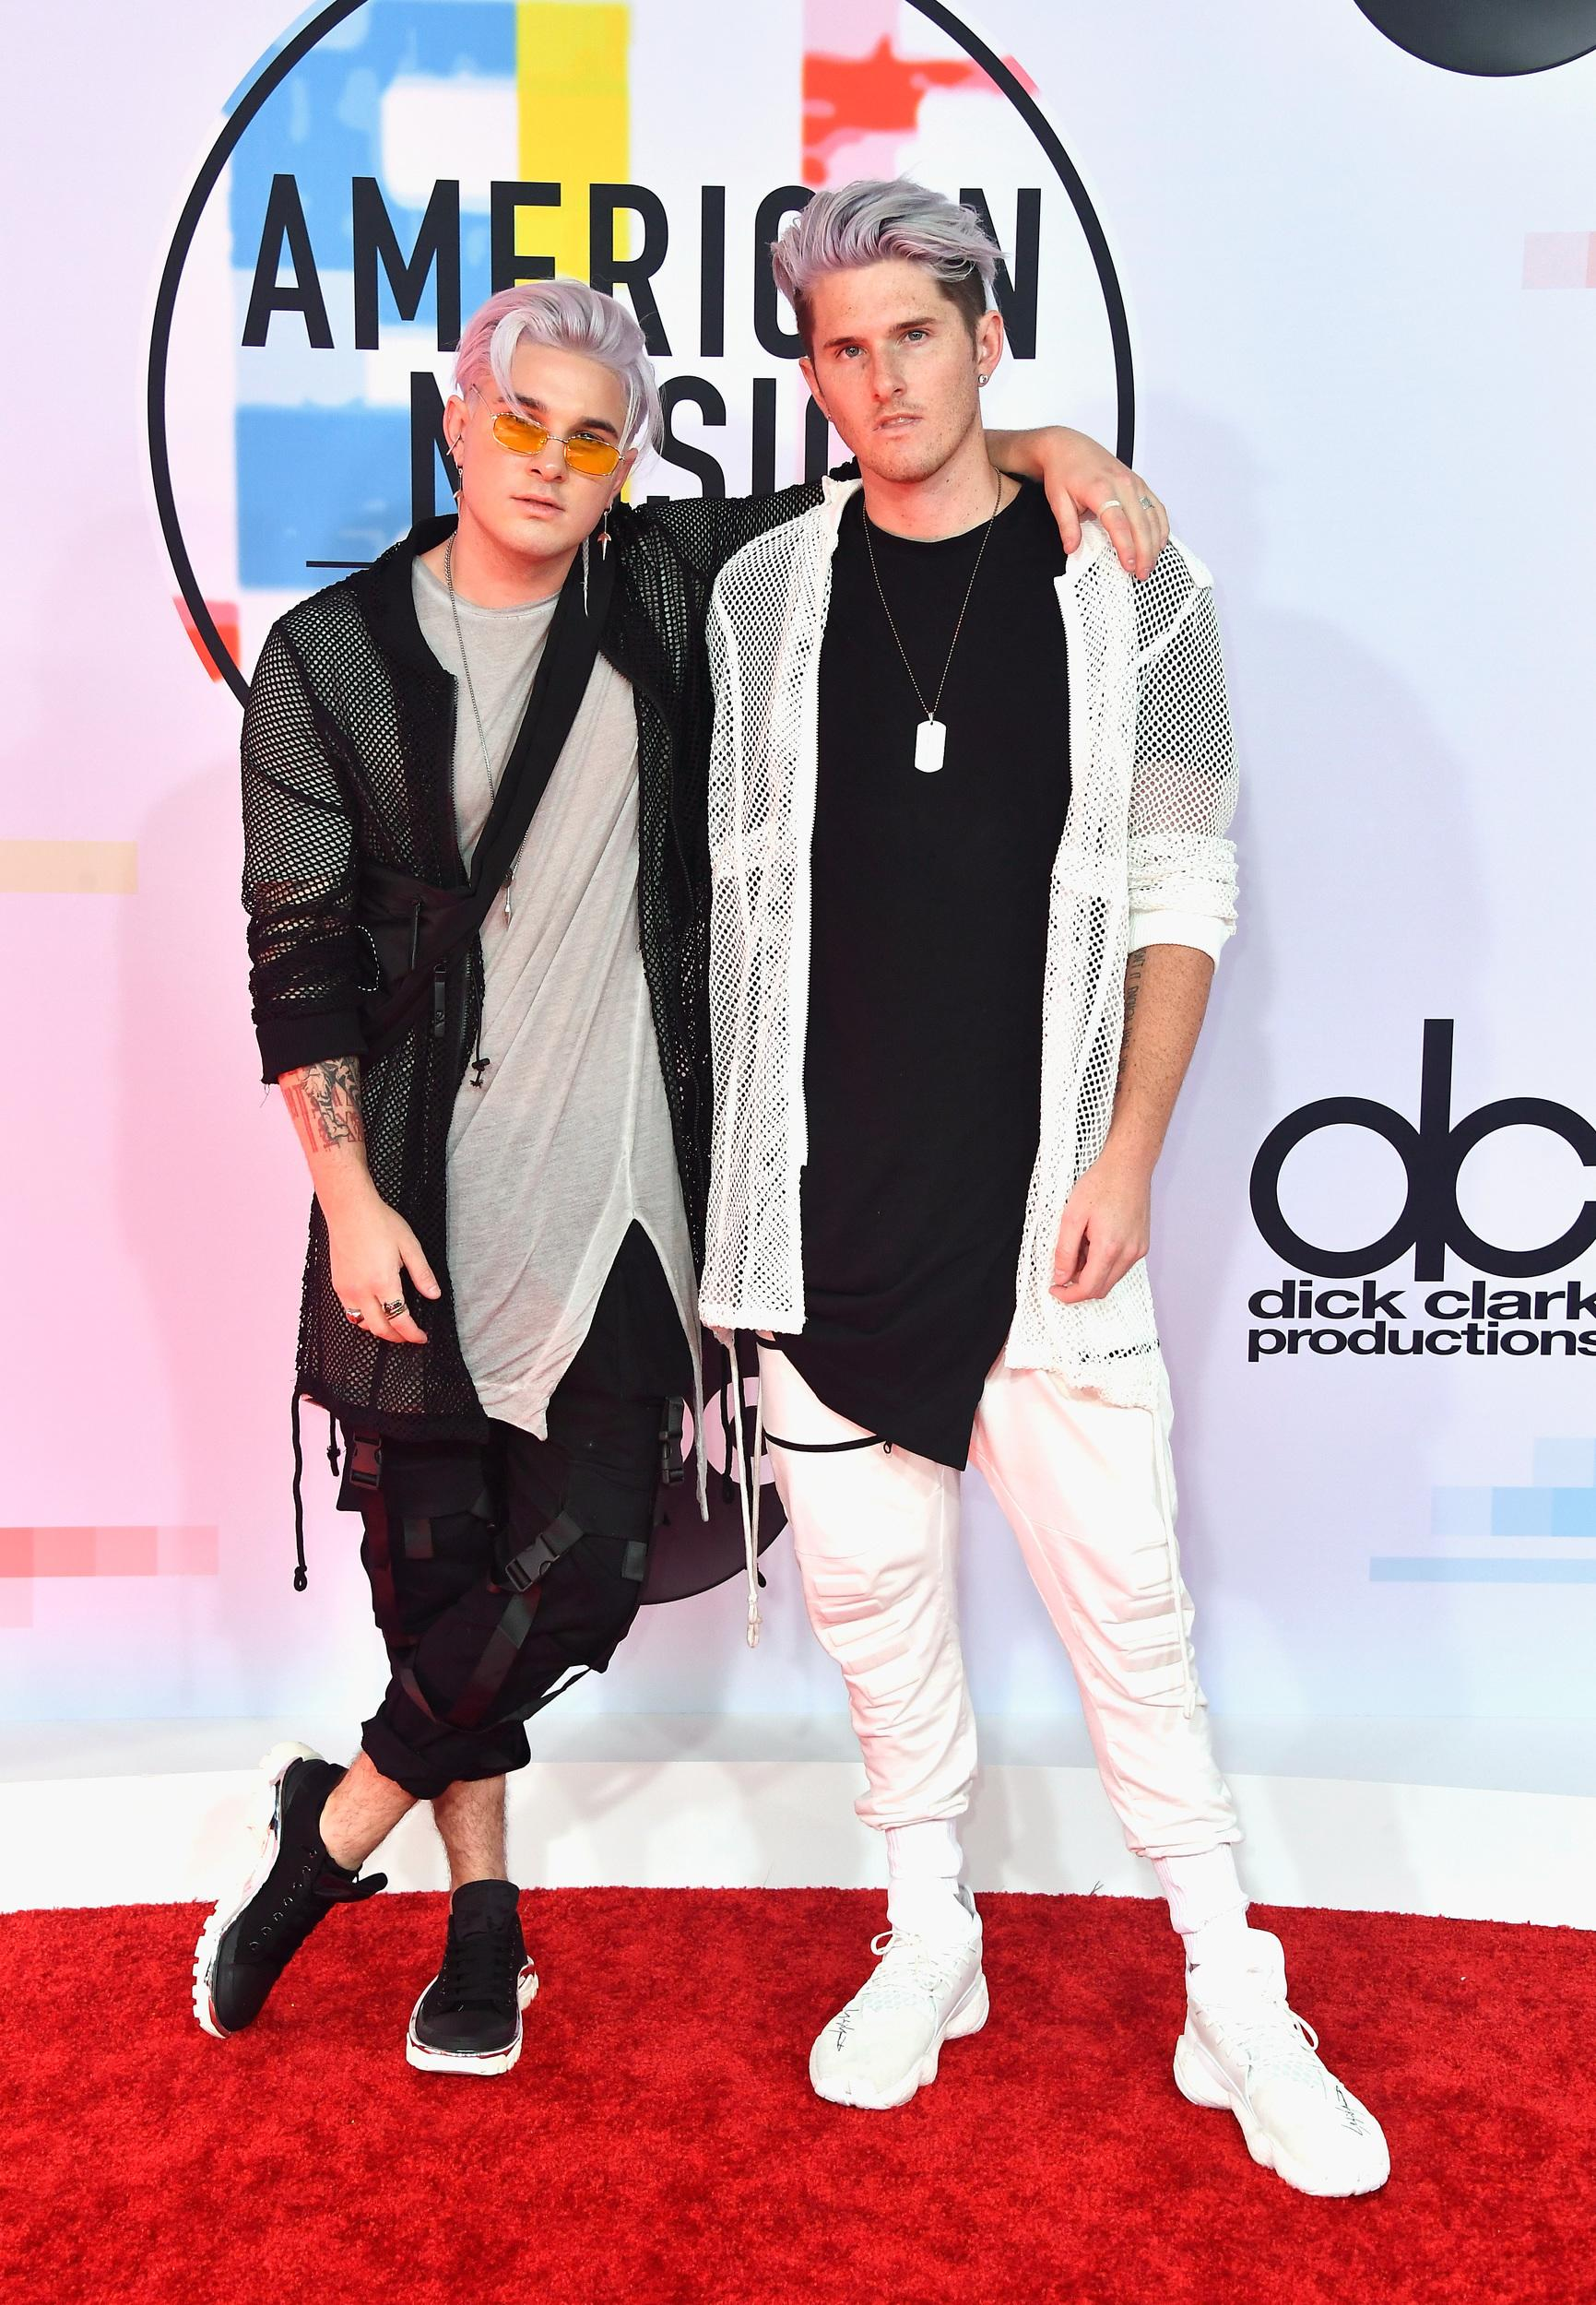 LOS ANGELES, CA - OCTOBER 09:  Michael Trewartha (L) and Kyle Trewartha of Grey attend the 2018 American Music Awards at Microsoft Theater on October 9, 2018 in Los Angeles, California.  (Photo by Frazer Harrison/Getty Images)